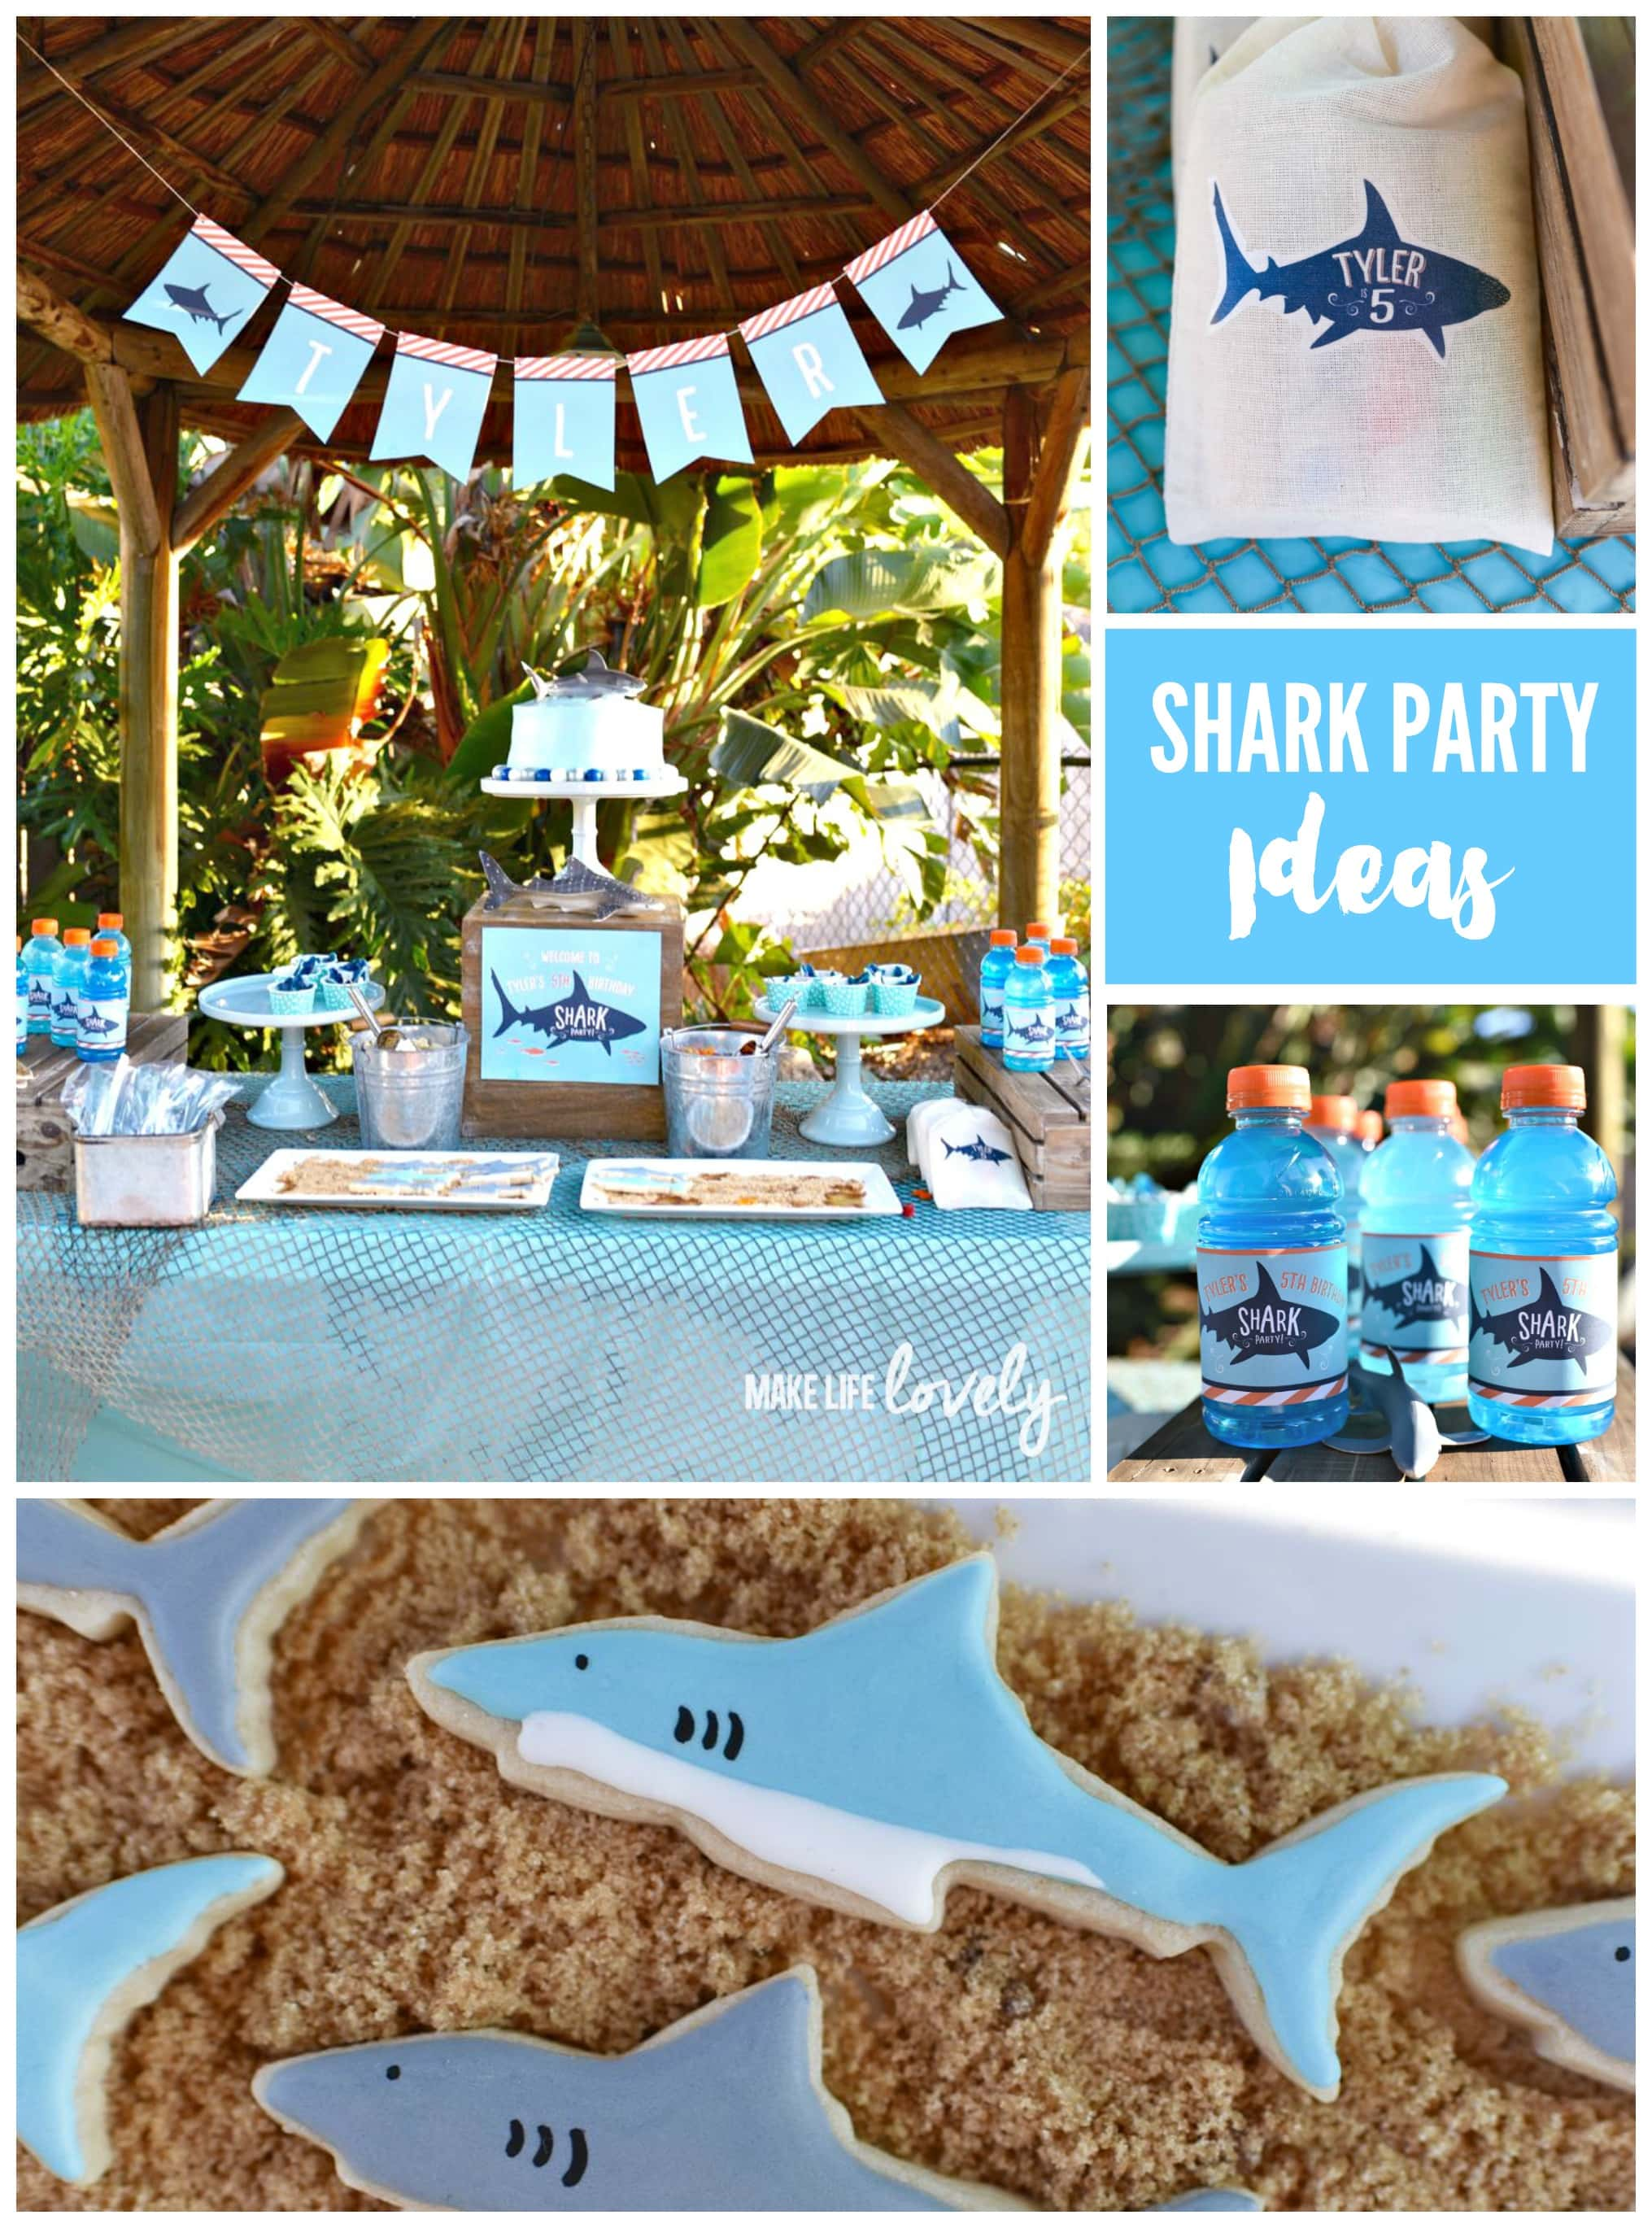 Shark Party Ideas So Many Cute For A Birthday